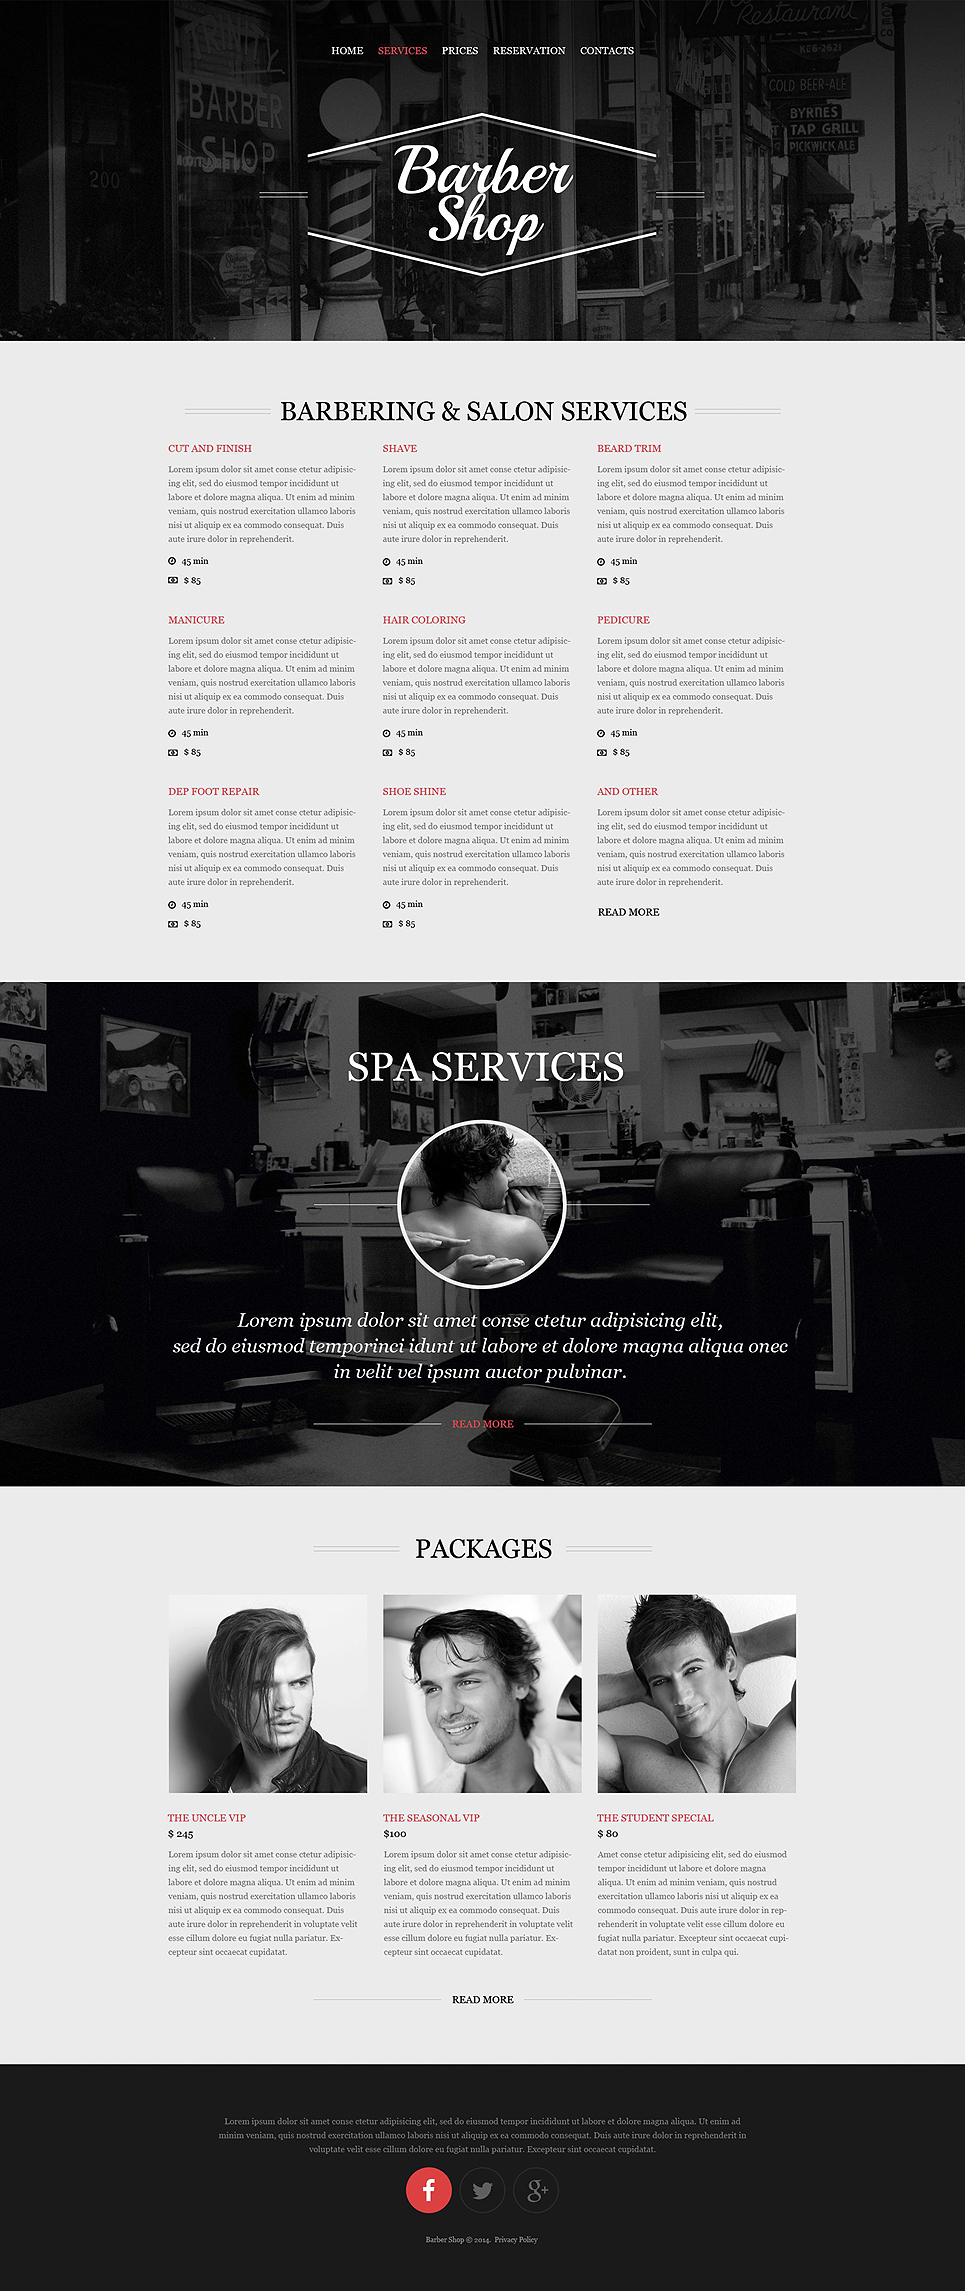 hair salon responsive website template 52290 by wt website templates. Black Bedroom Furniture Sets. Home Design Ideas